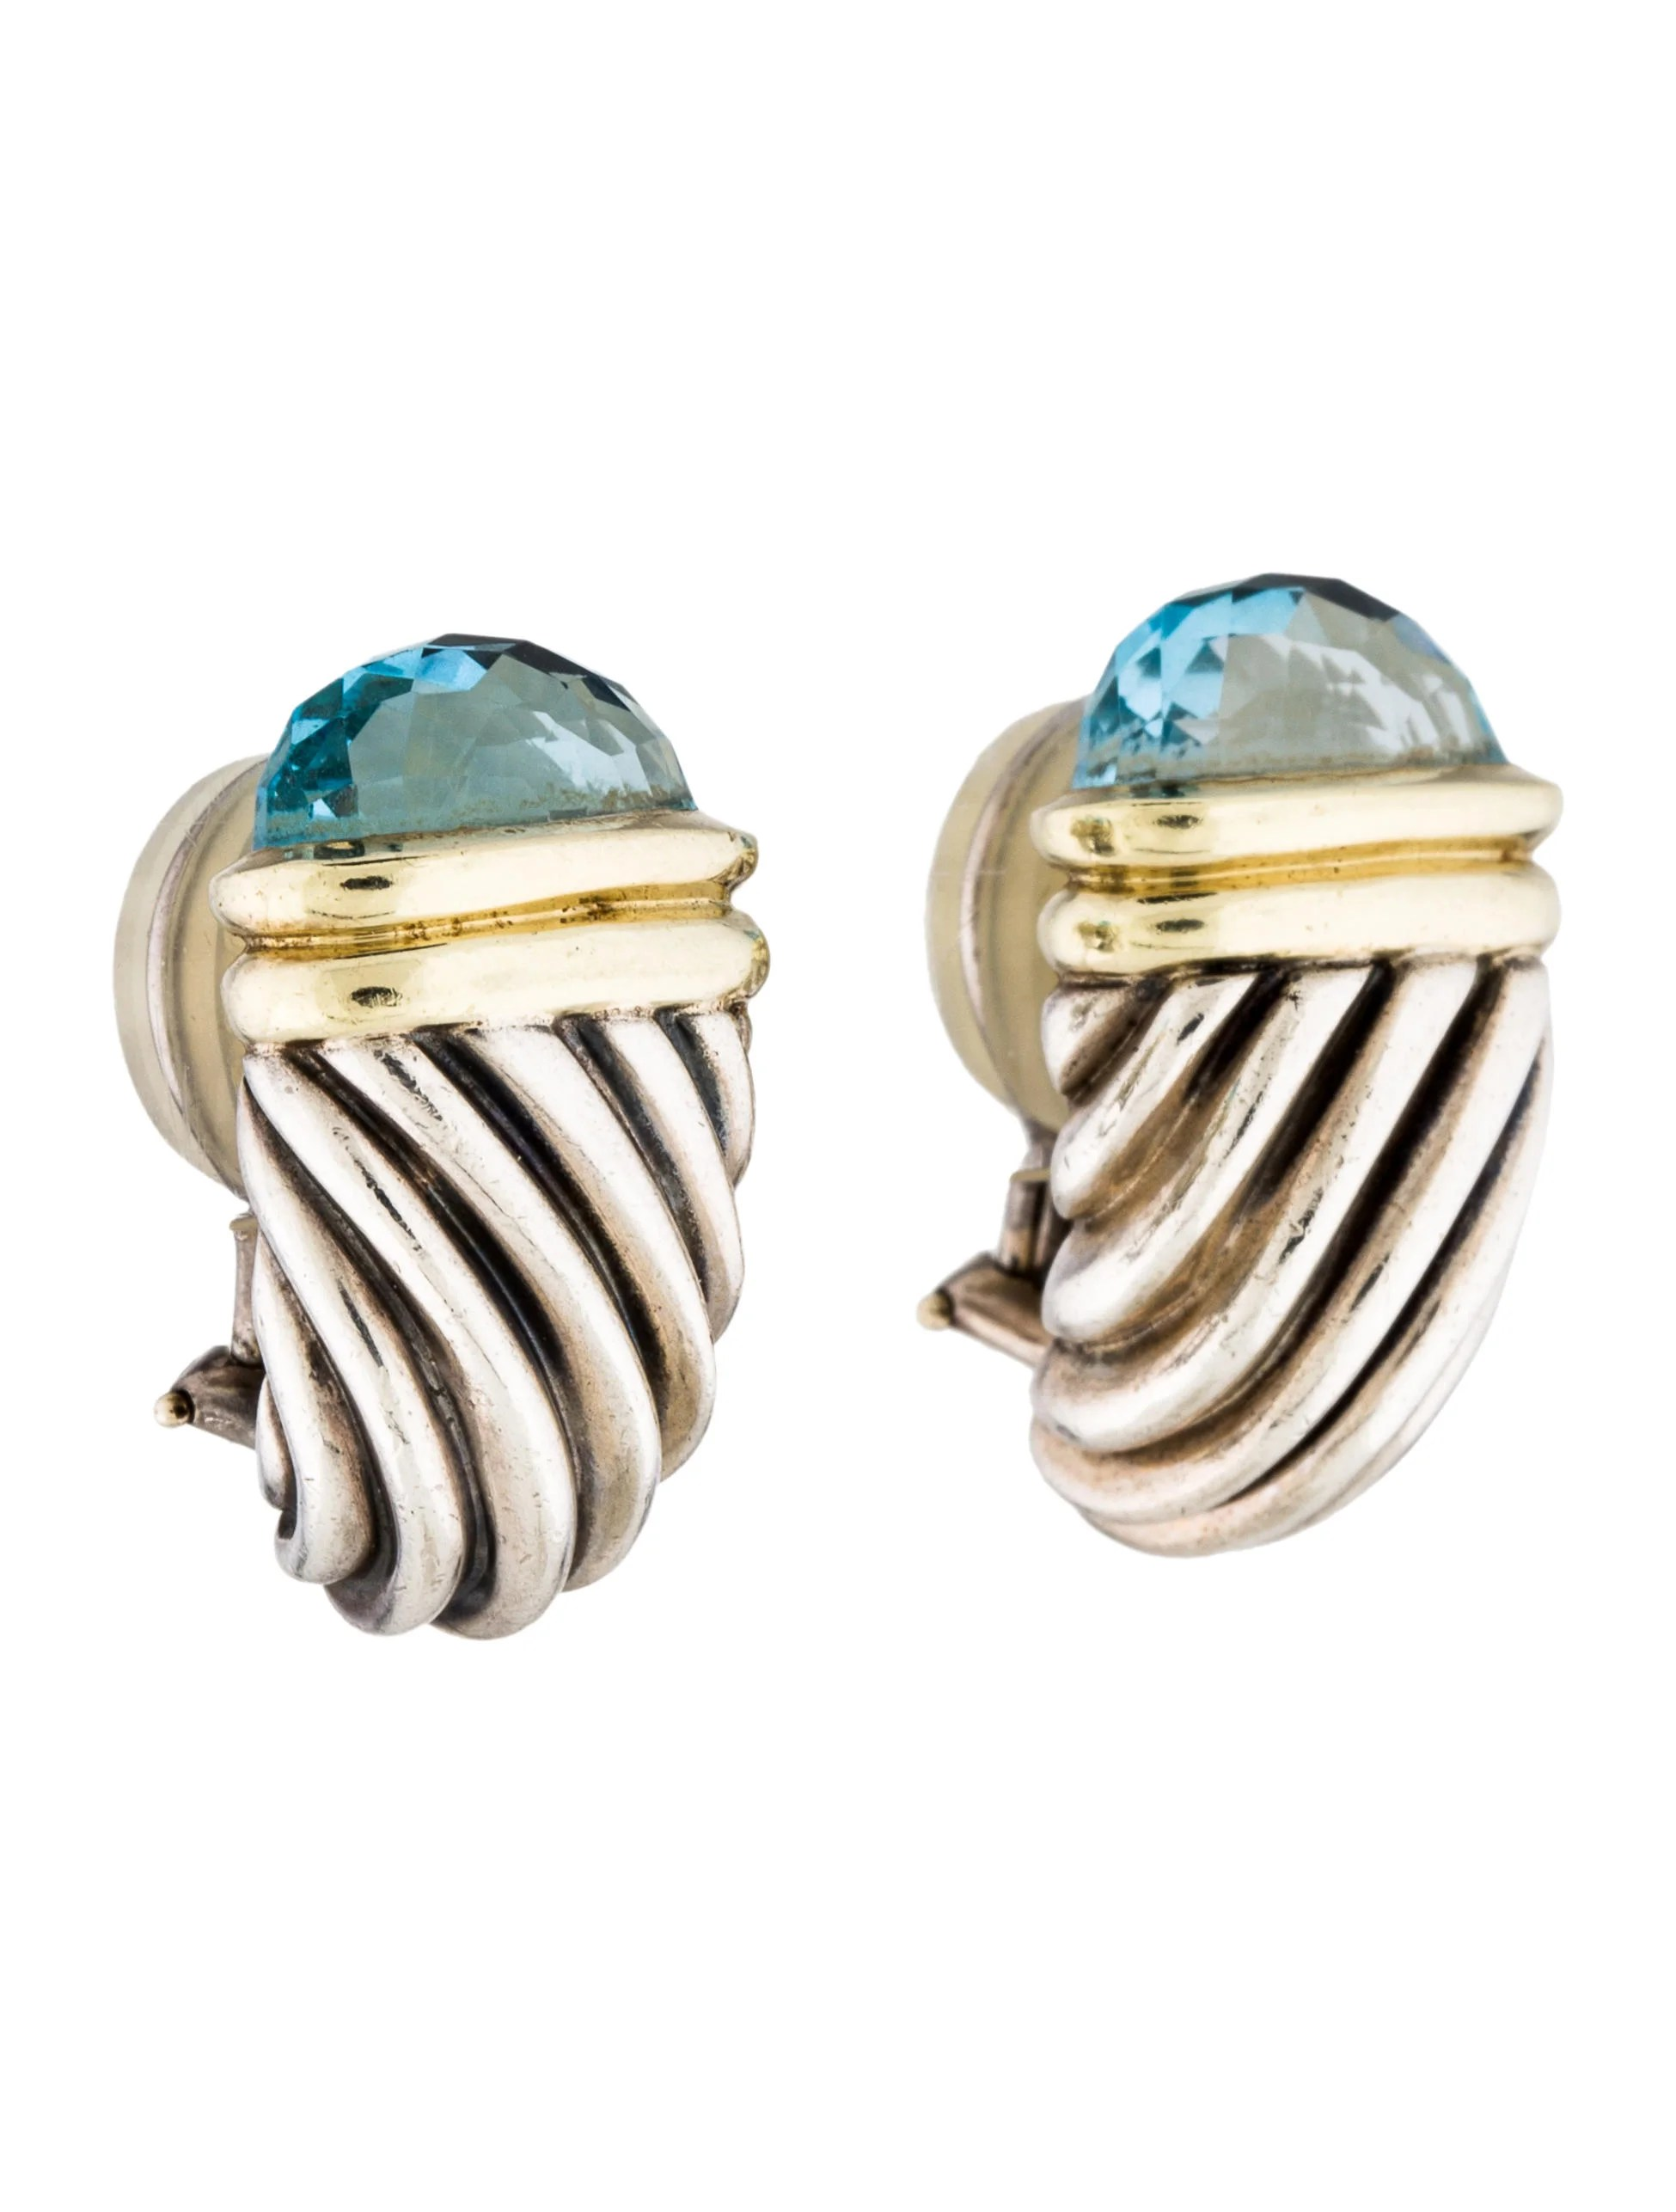 David Yurman Topaz Shrimp Earclip Earrings Earrings